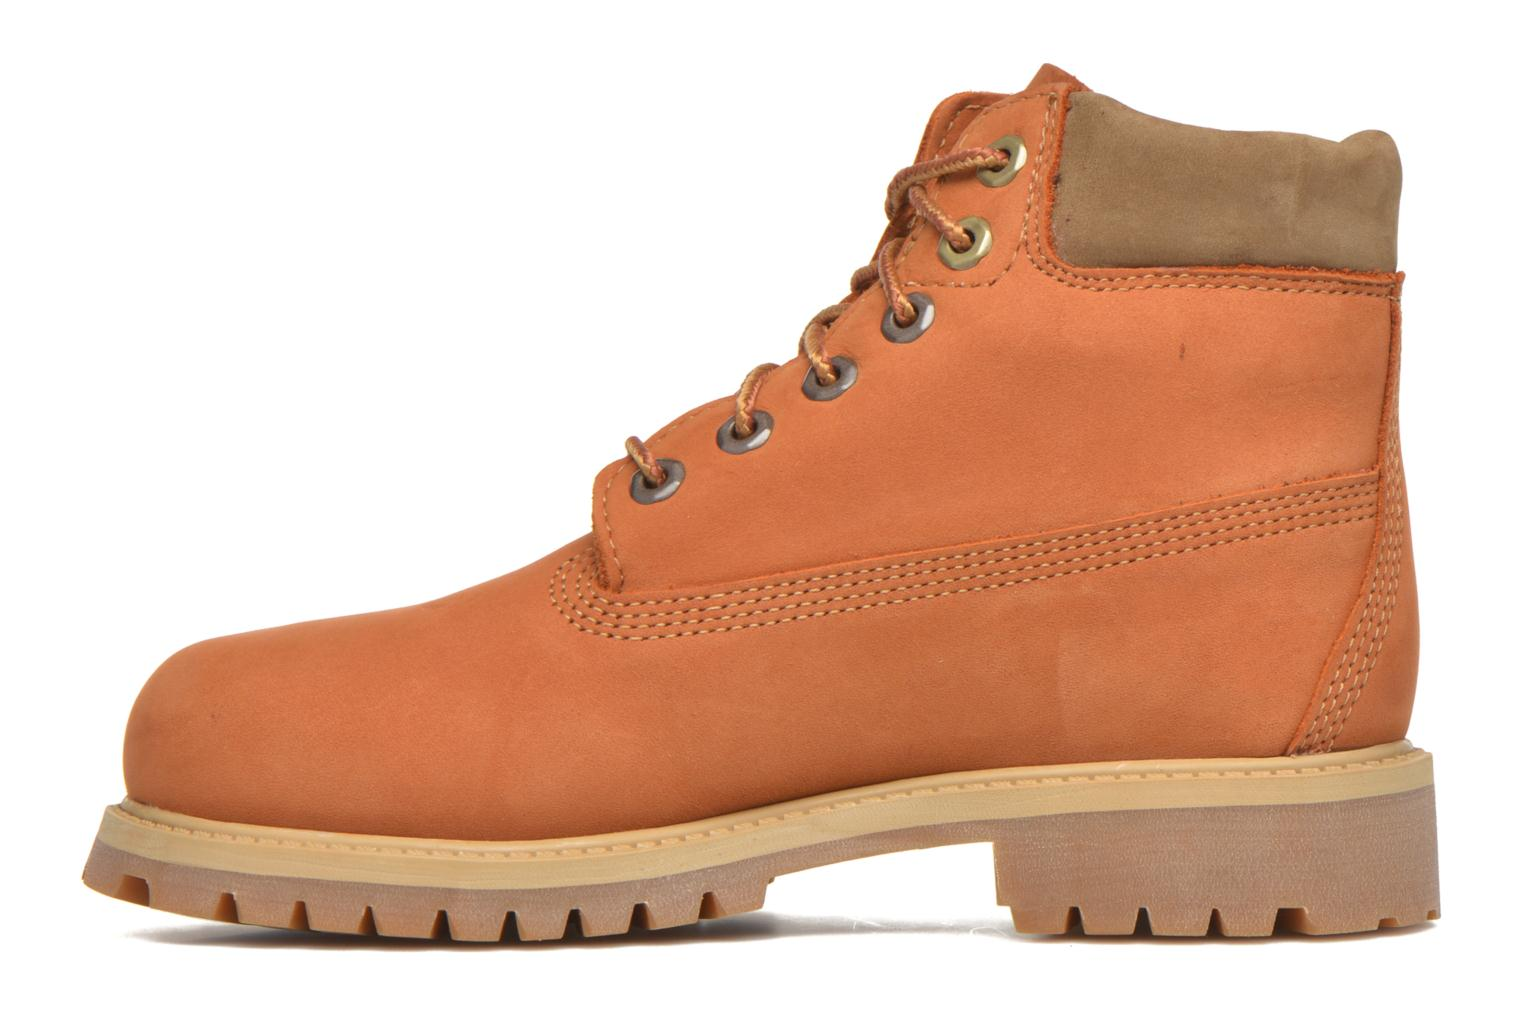 Bottines et boots Timberland 6 In Premium WP Boot Beige vue face